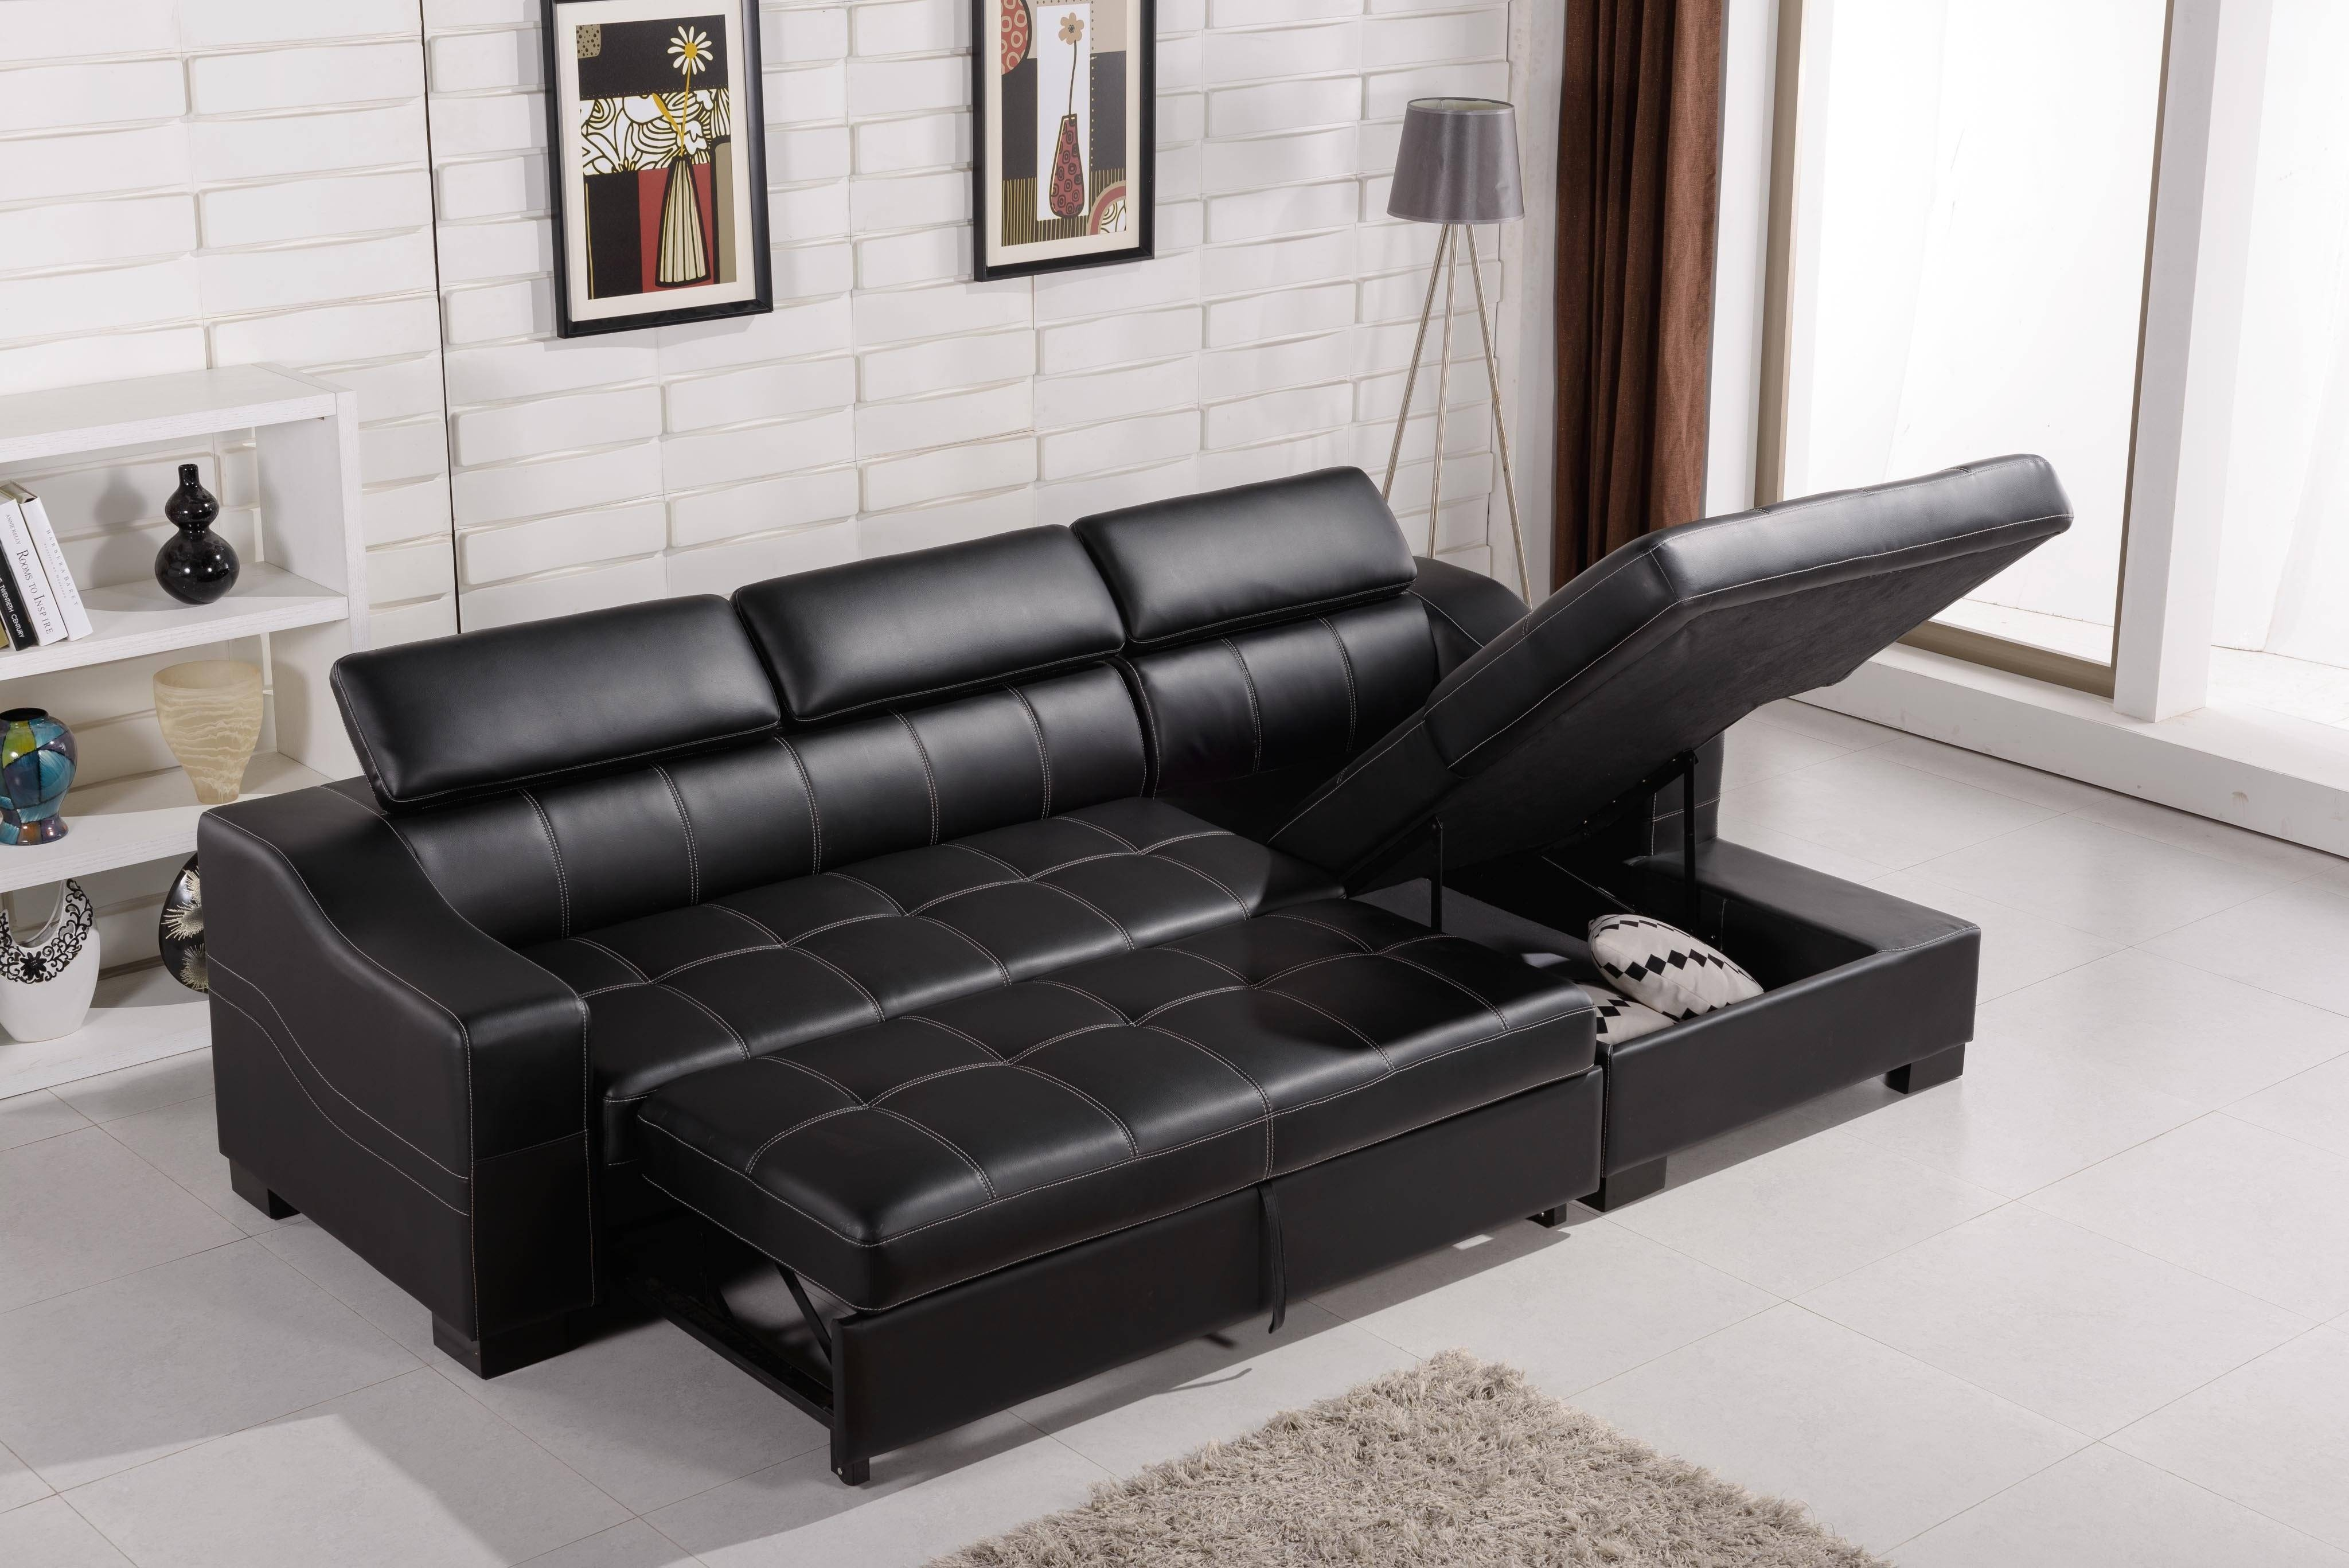 Furniture: Exciting Sectional Sofas Costco For Your Family Room in Sofas and Sectionals (Image 7 of 30)